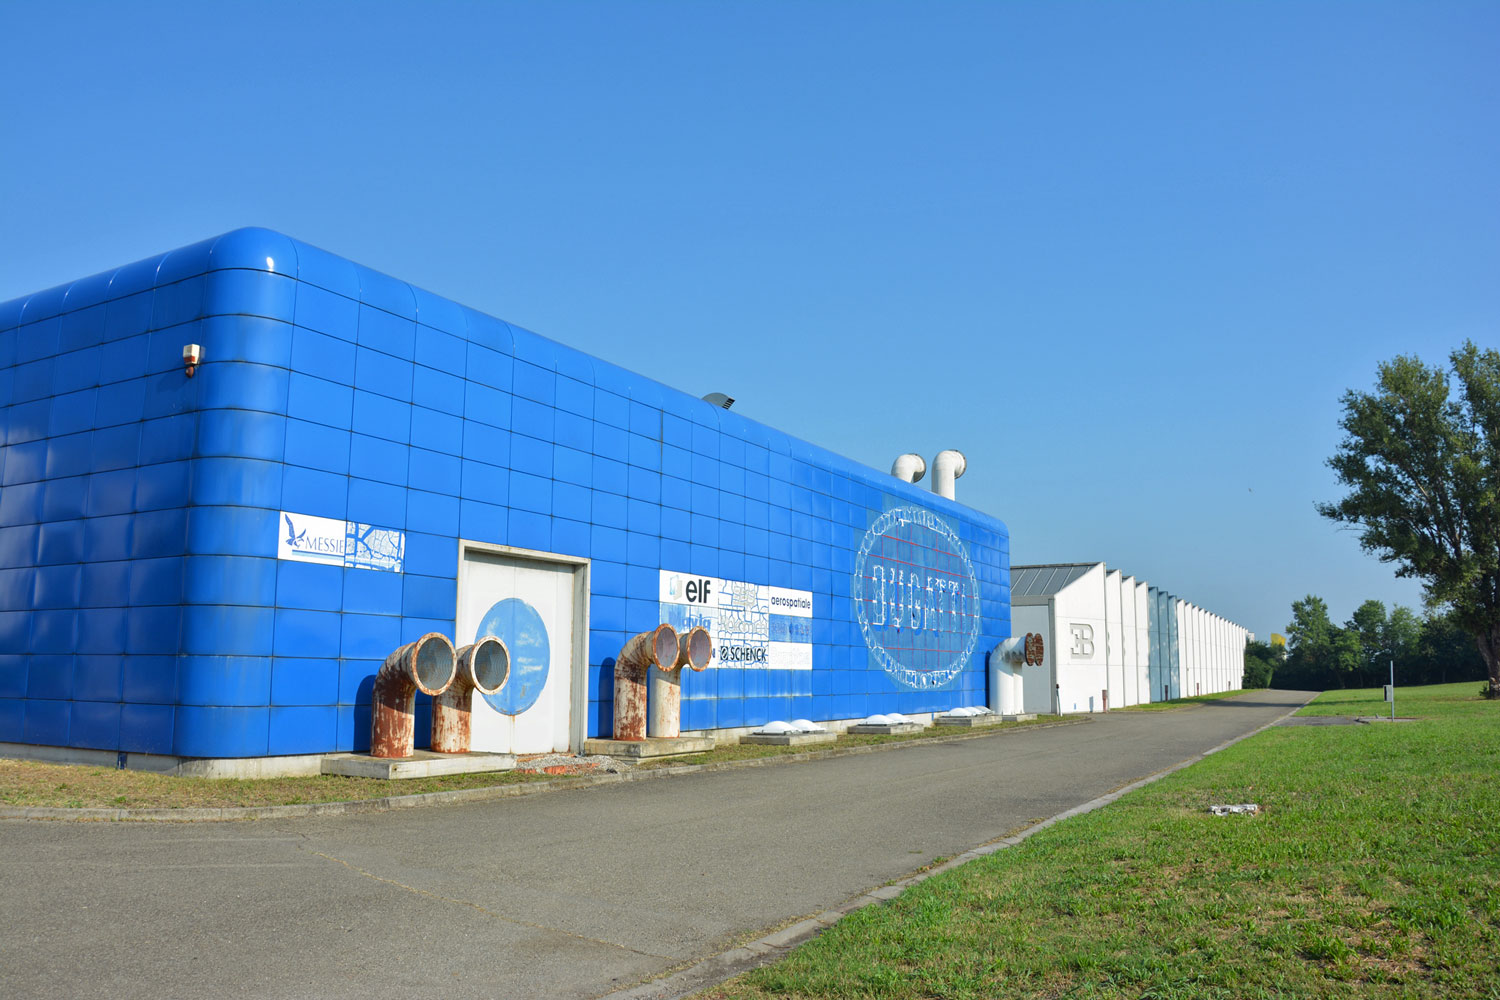 Bugatti's Blue Factory in Campogalliano